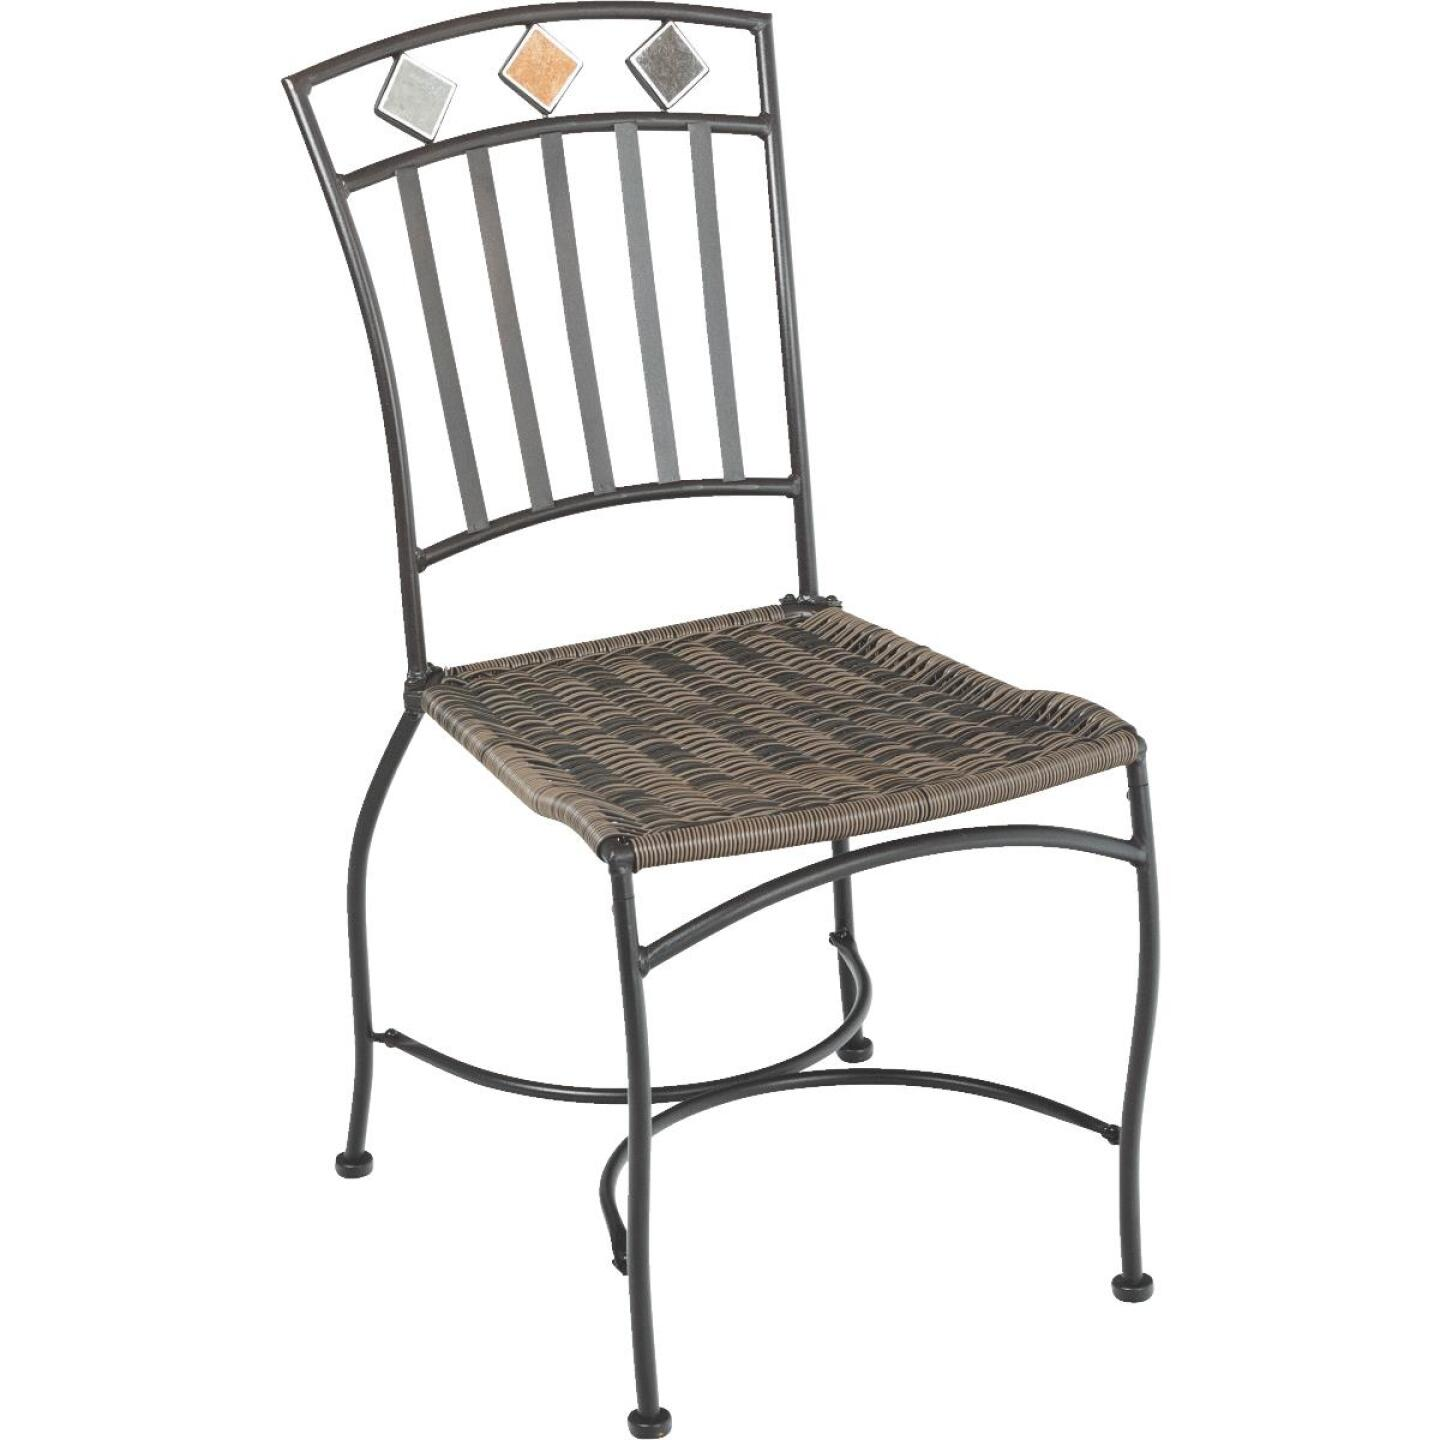 Outdoor Expressions Santorini 3-Piece Bistro Set with Wicker Seats Image 11